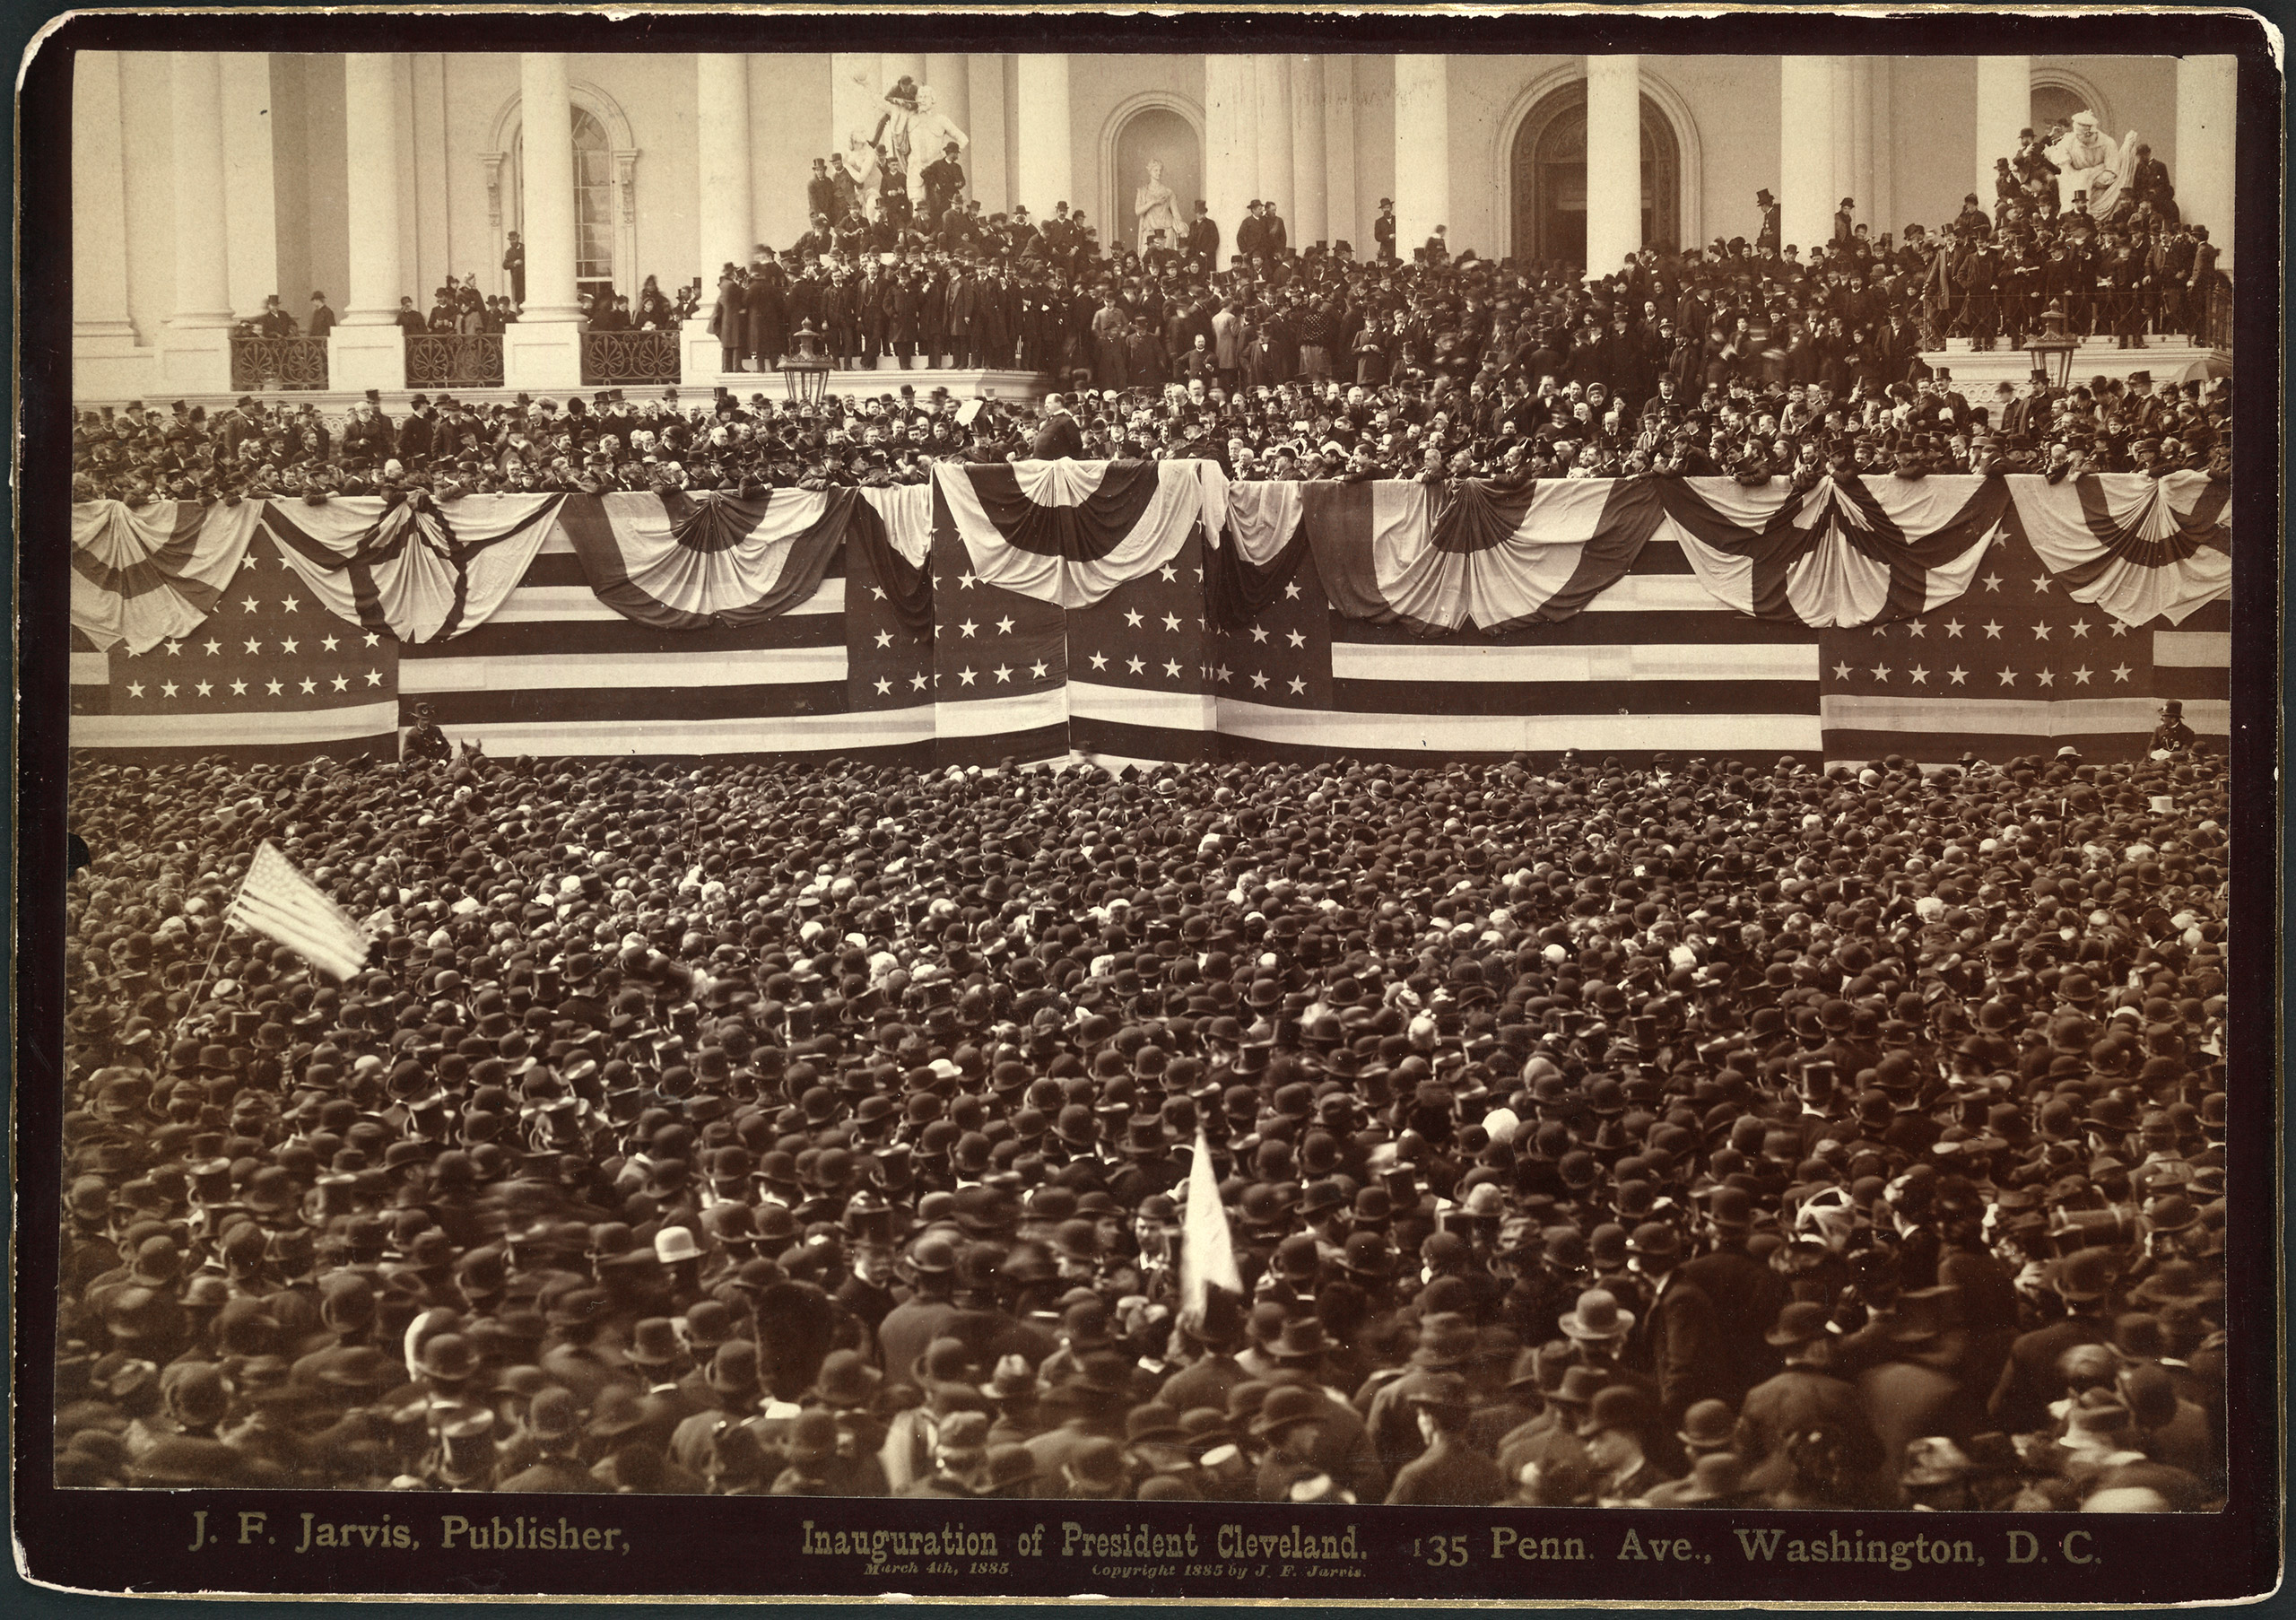 Grover Cleveland, delivering his inaugural address to crowd on east portico of U.S. Capitol at his first inauguration, 1885.